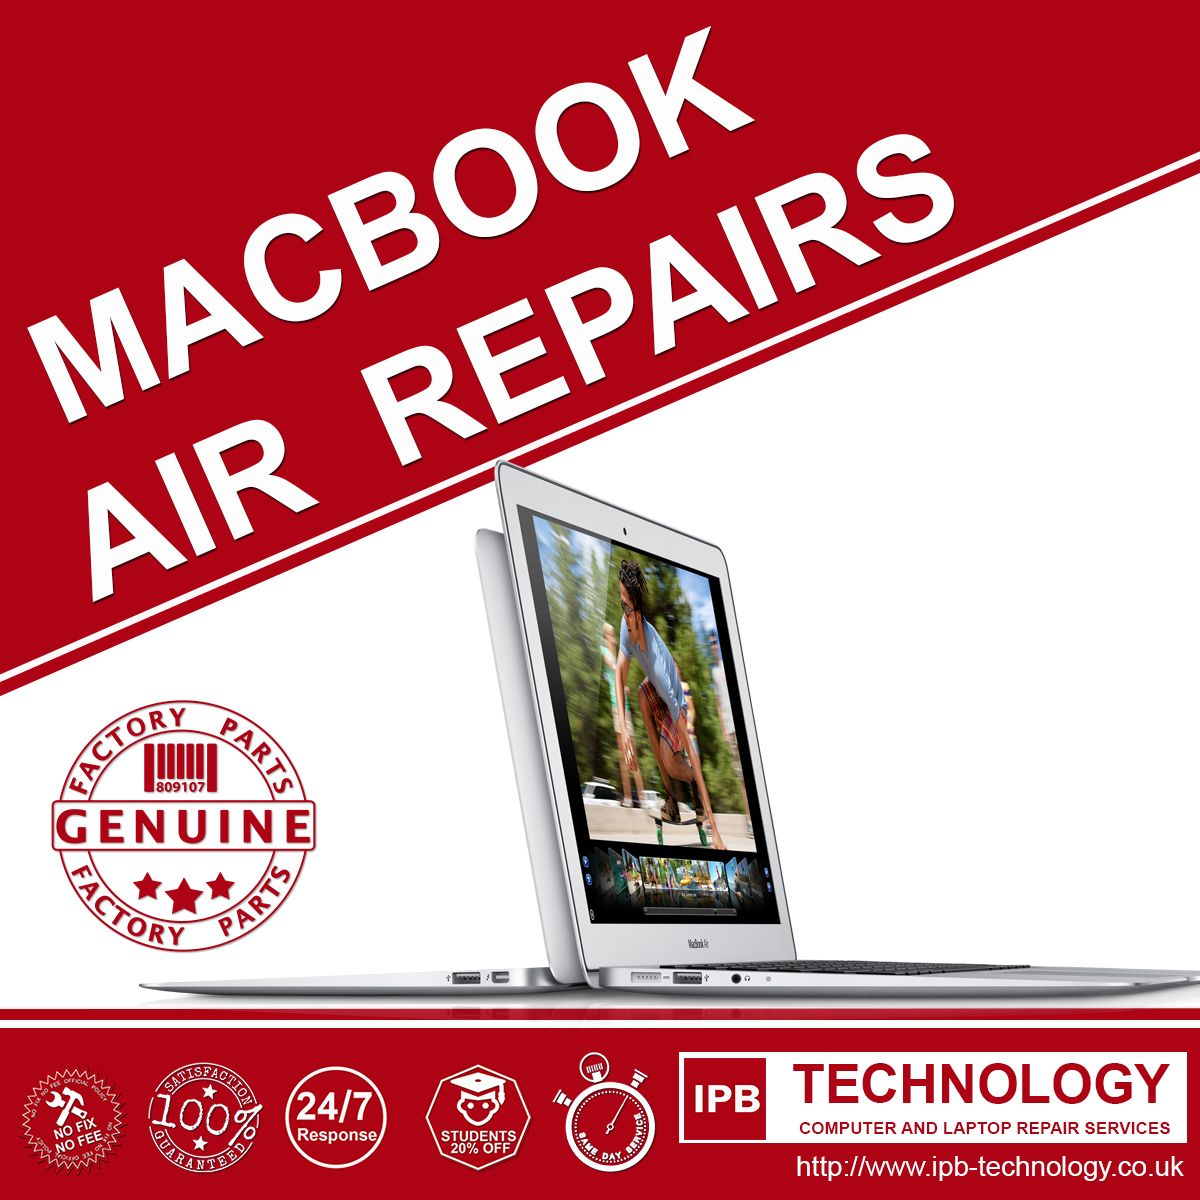 We specialise in MacBook Air Repair and Servicing for